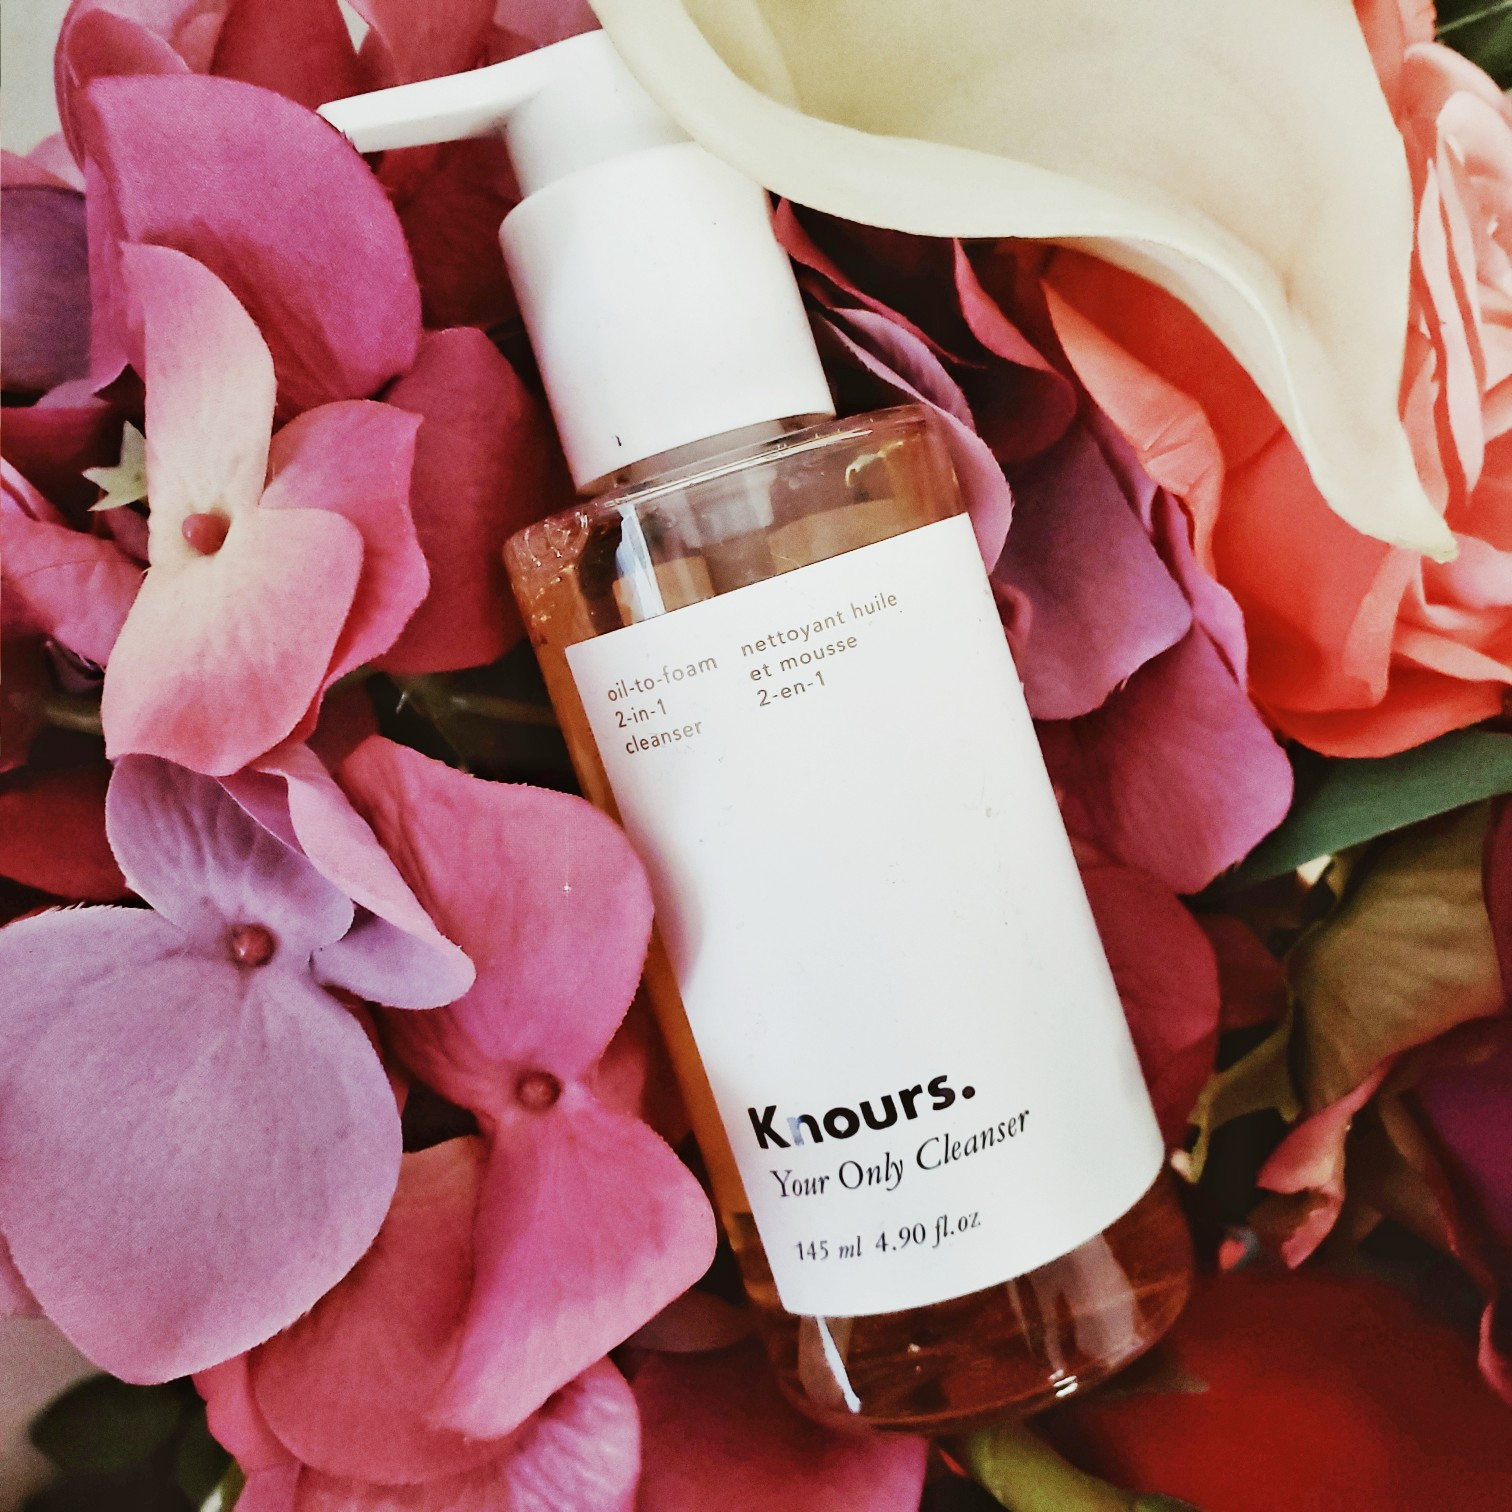 Your Only Cleanser from Knours